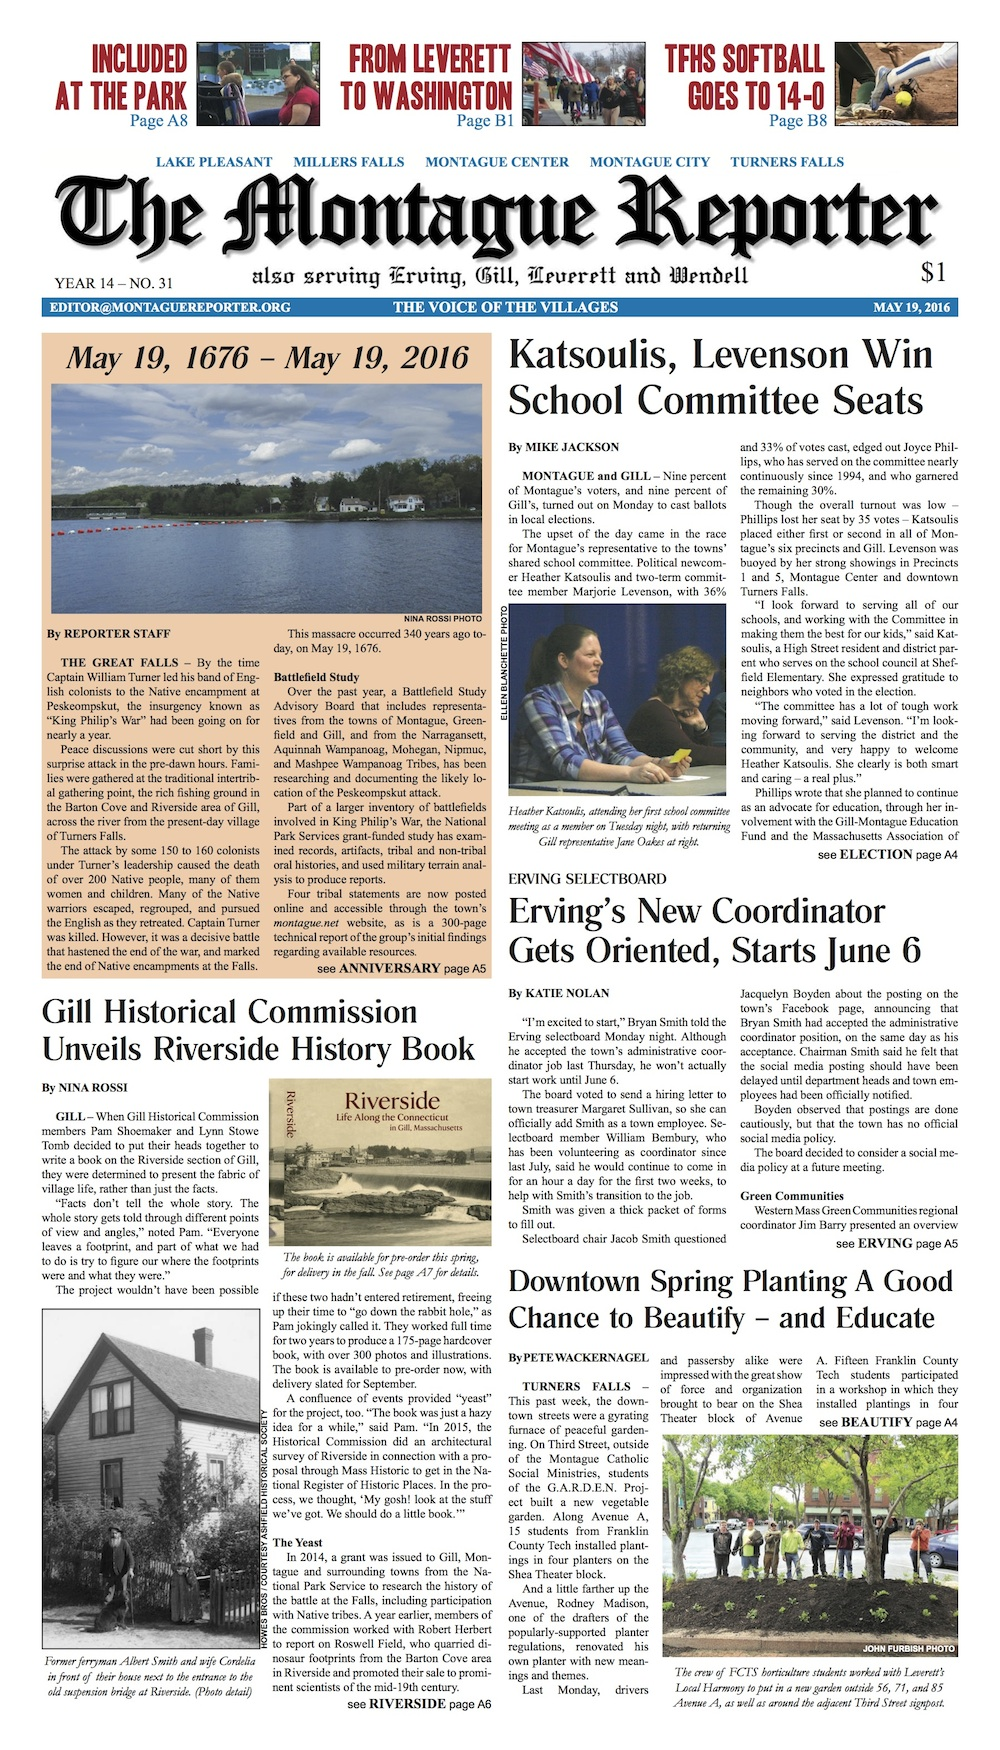 Page A1, 5/19/16